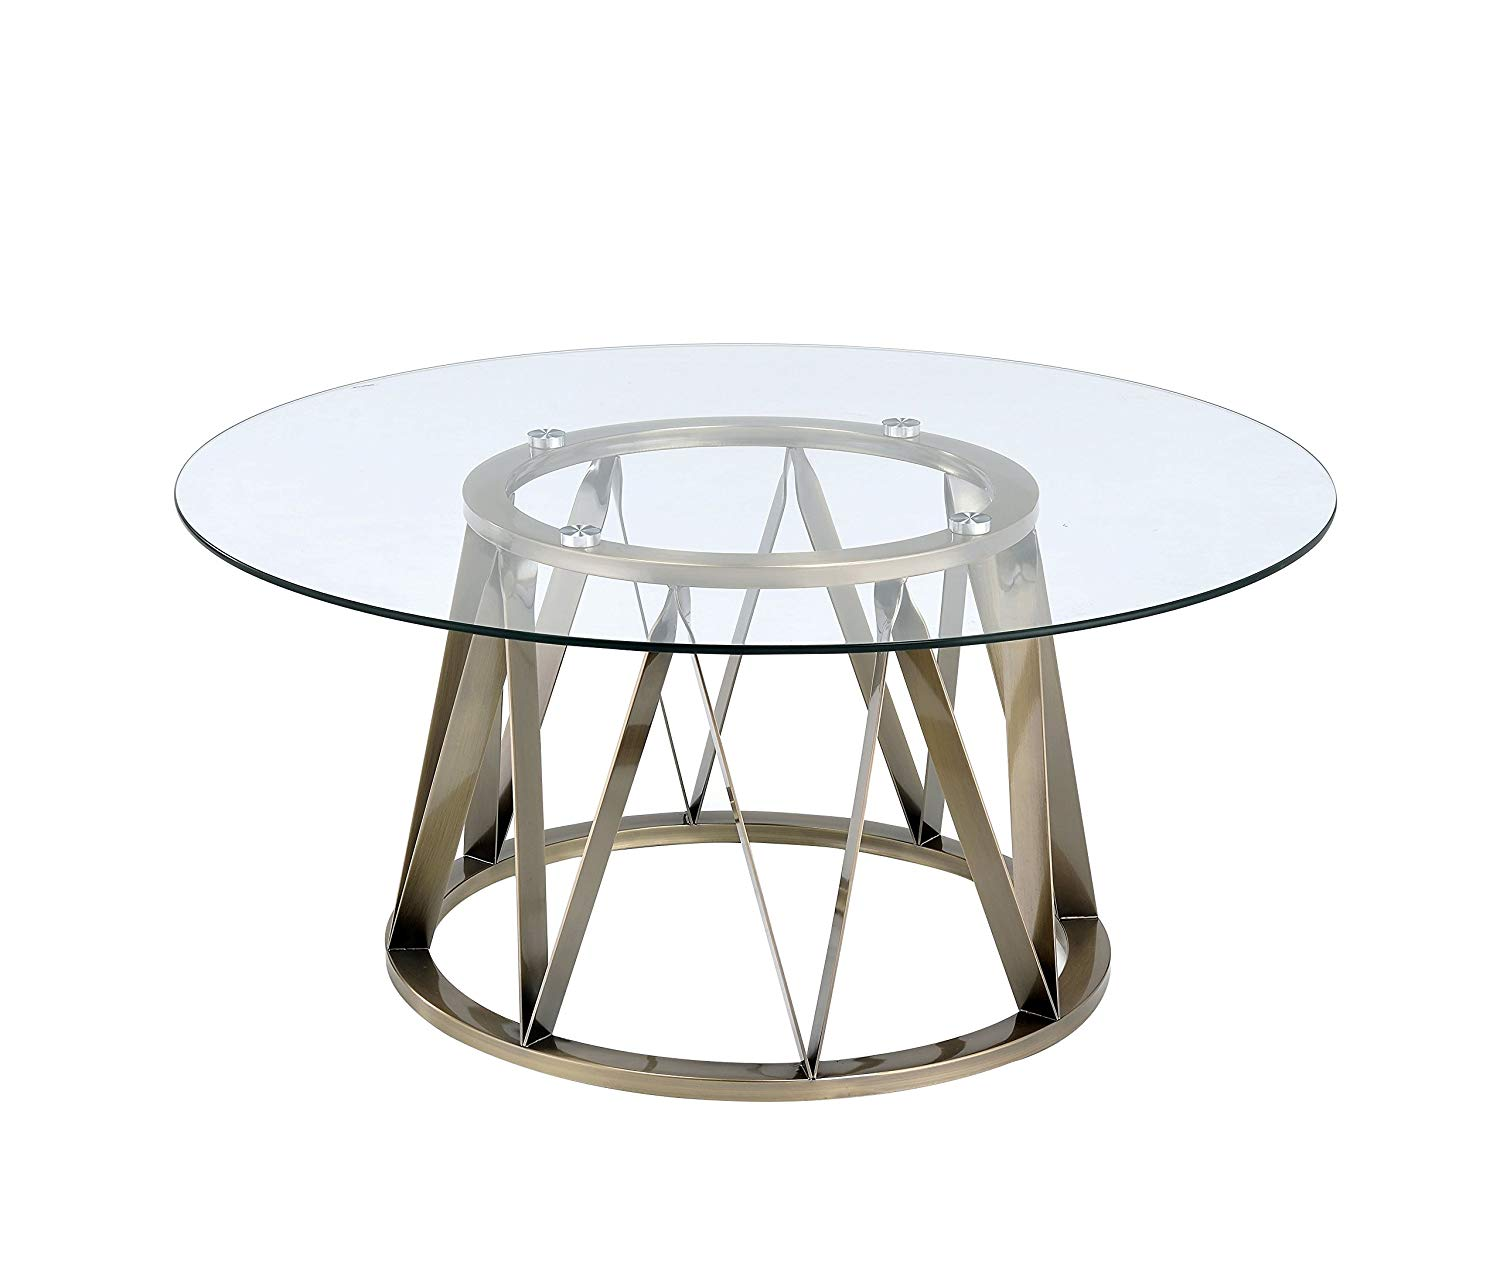 acme perjan antique brass coffee table with glass top end kitchen dining stainless steel bathroom shelves free dog kennel plans for large dogs plastic cube gray nightstand looking